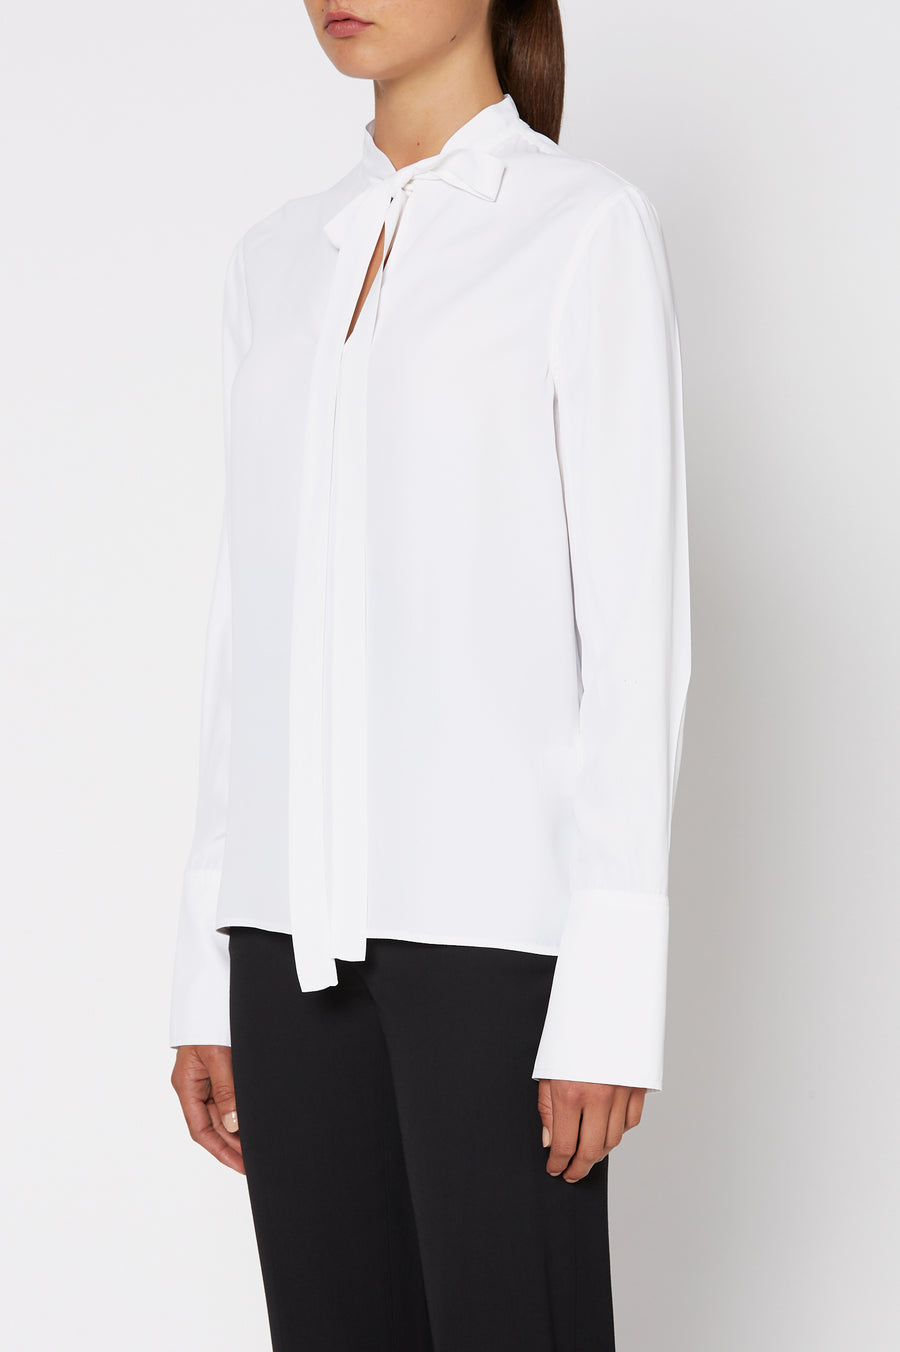 POWDERED VISCOSE BLOUSE, WHITE color